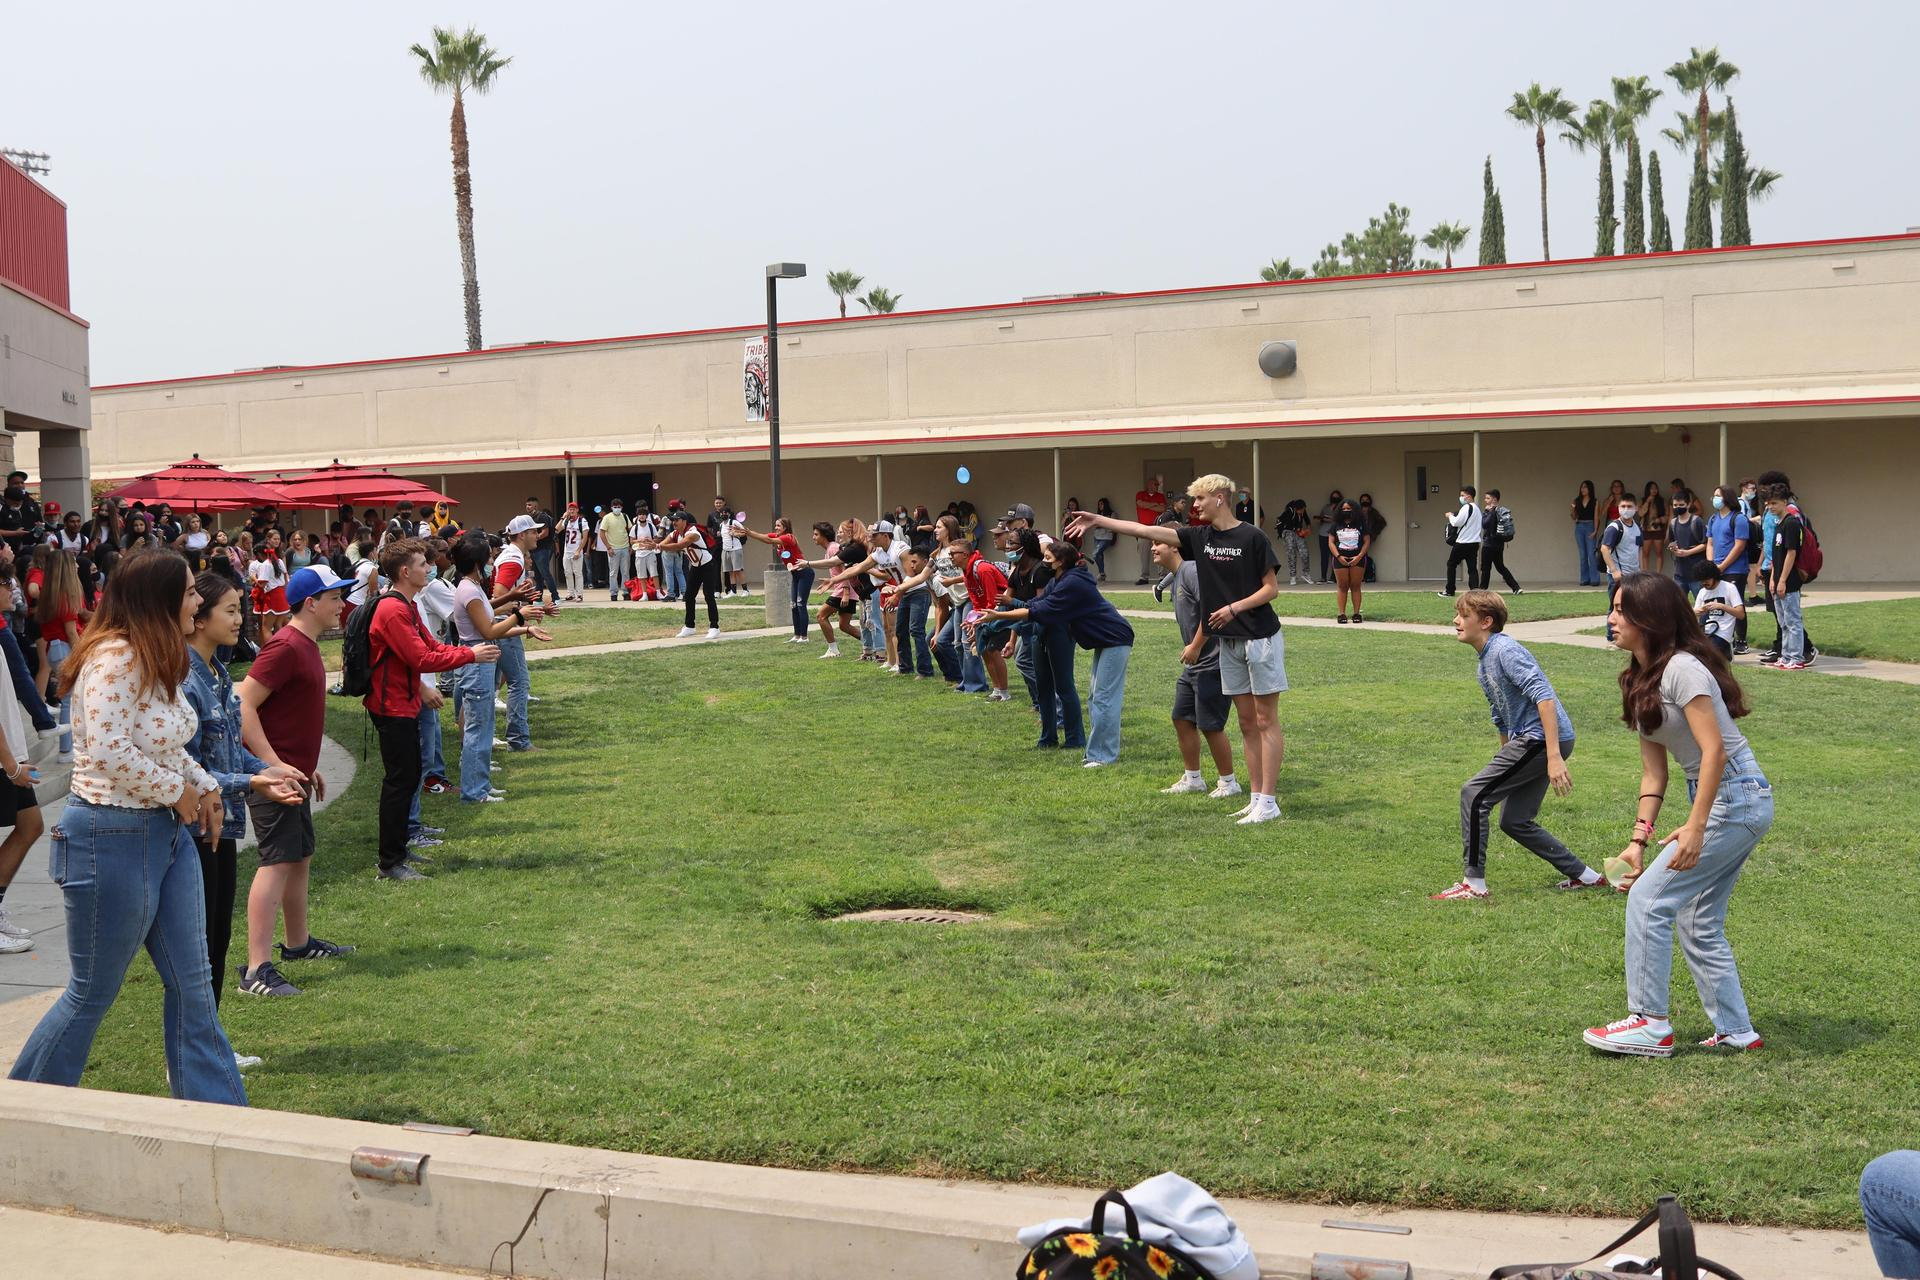 Students tossing balloons at lunch